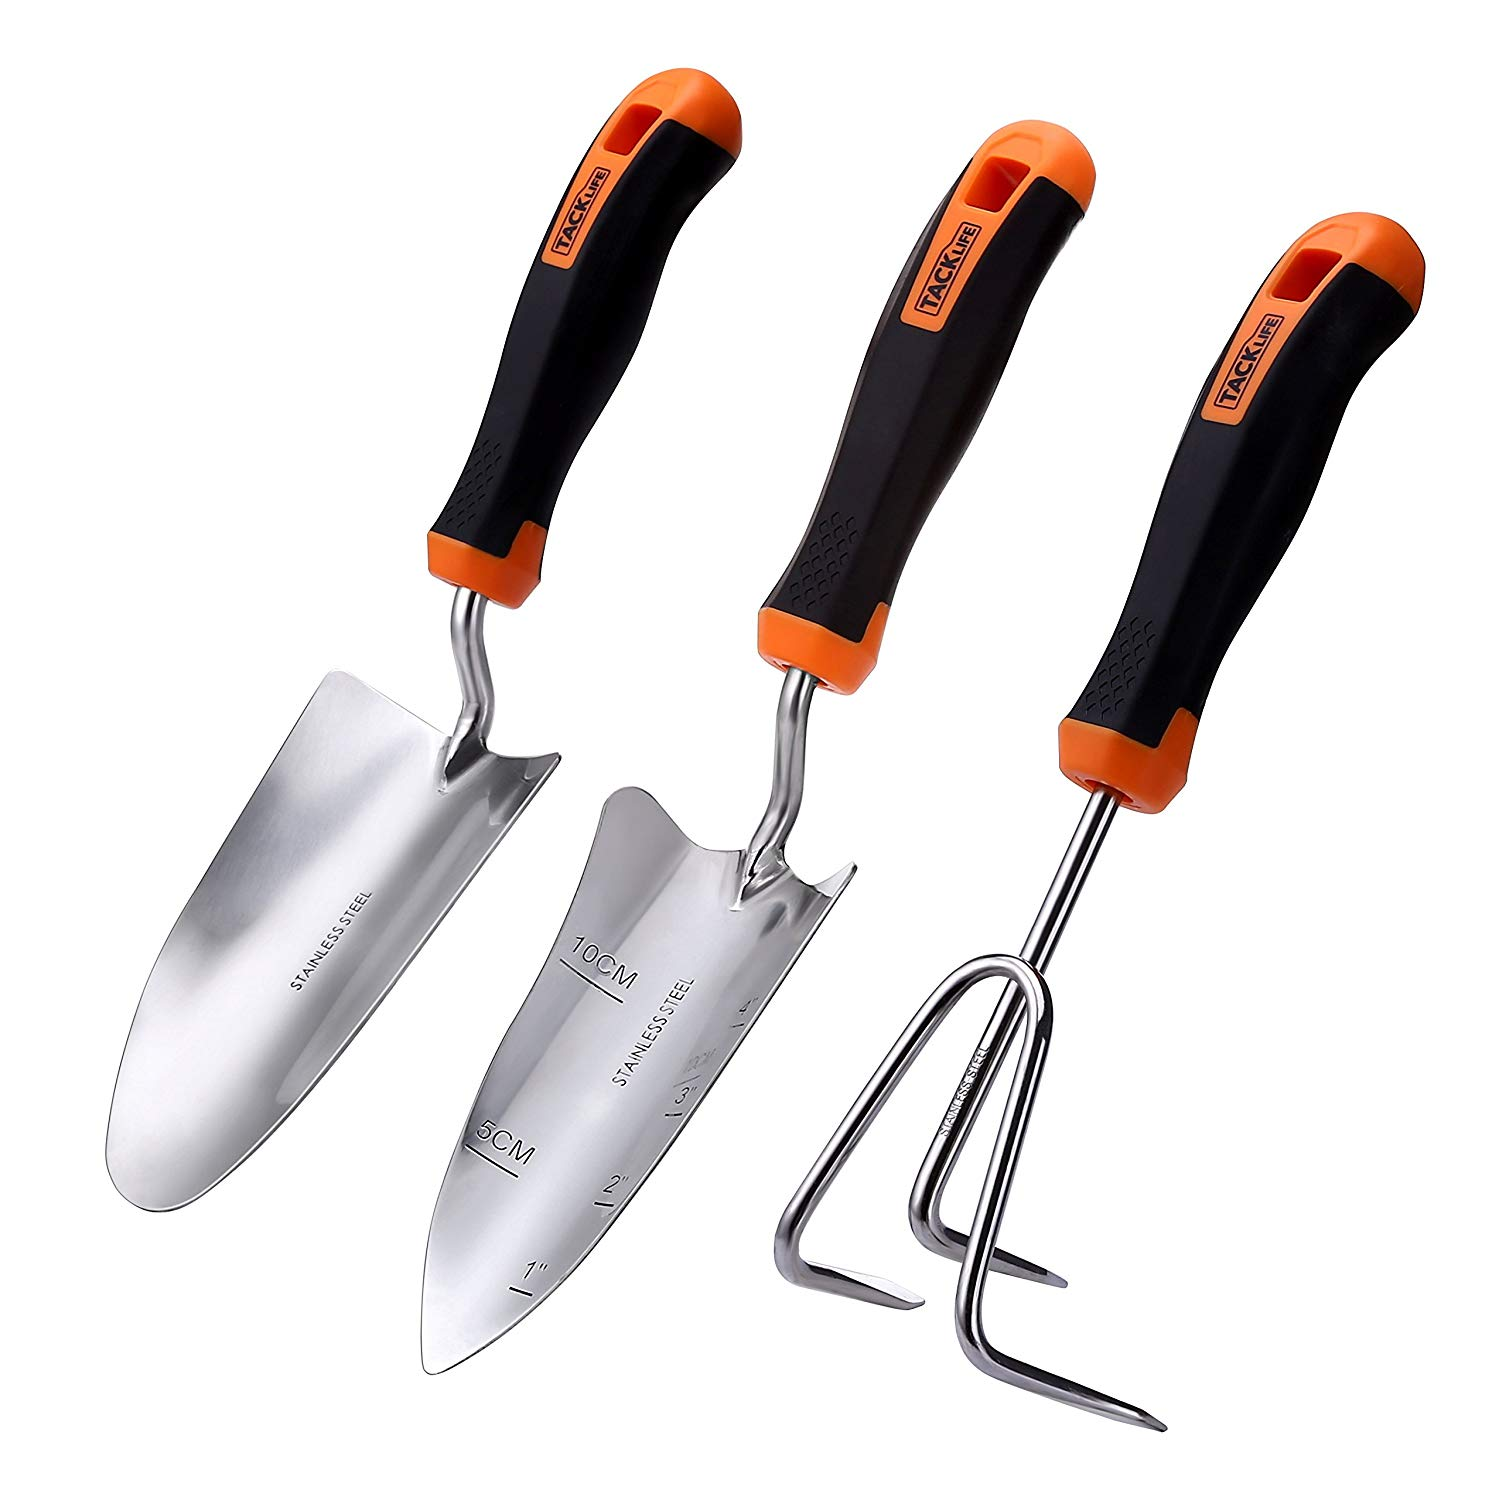 TACKLIFE 3 Piece Garden Tool Set, Stainless Steel Hand Tool Gift Kit Including Trowel + Transplant Trowel + Cultivator for Keen Gardeners